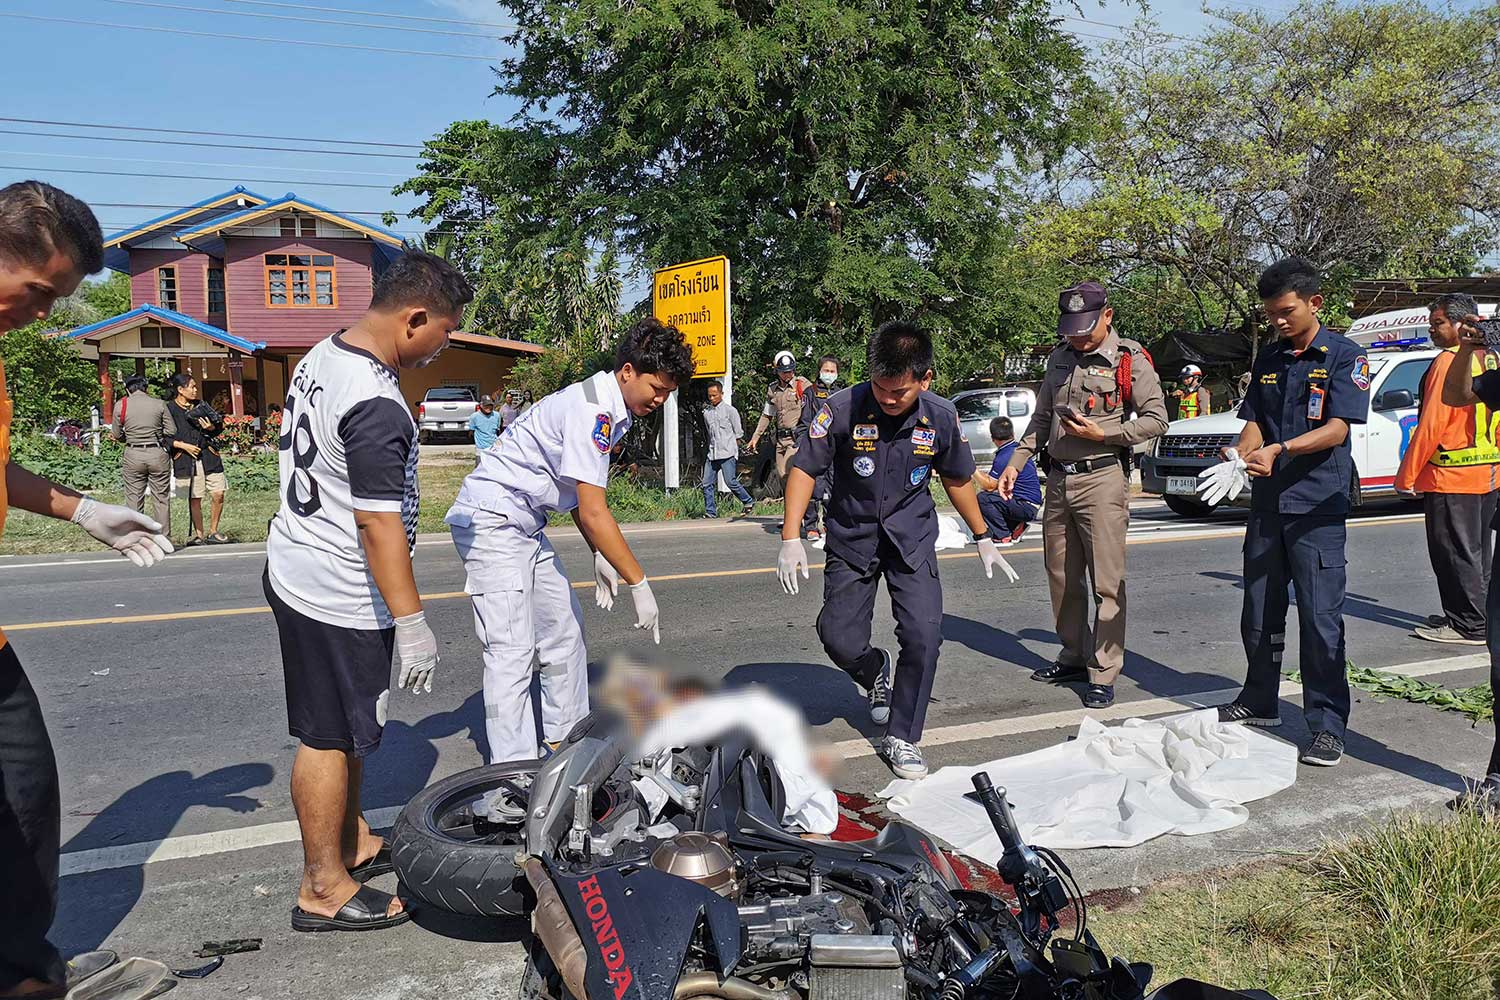 Rescue workers try to move the body of a 27-year-old man from the wreckage of his big bike while a 68-year-old man, rider of a motorcycle with his push cart tricycle involved in the crash, is found dead not far from the scene on Si Sa Ket-Kantharalak Road in Muang district, Si Sa Ket province, on Friday morning.